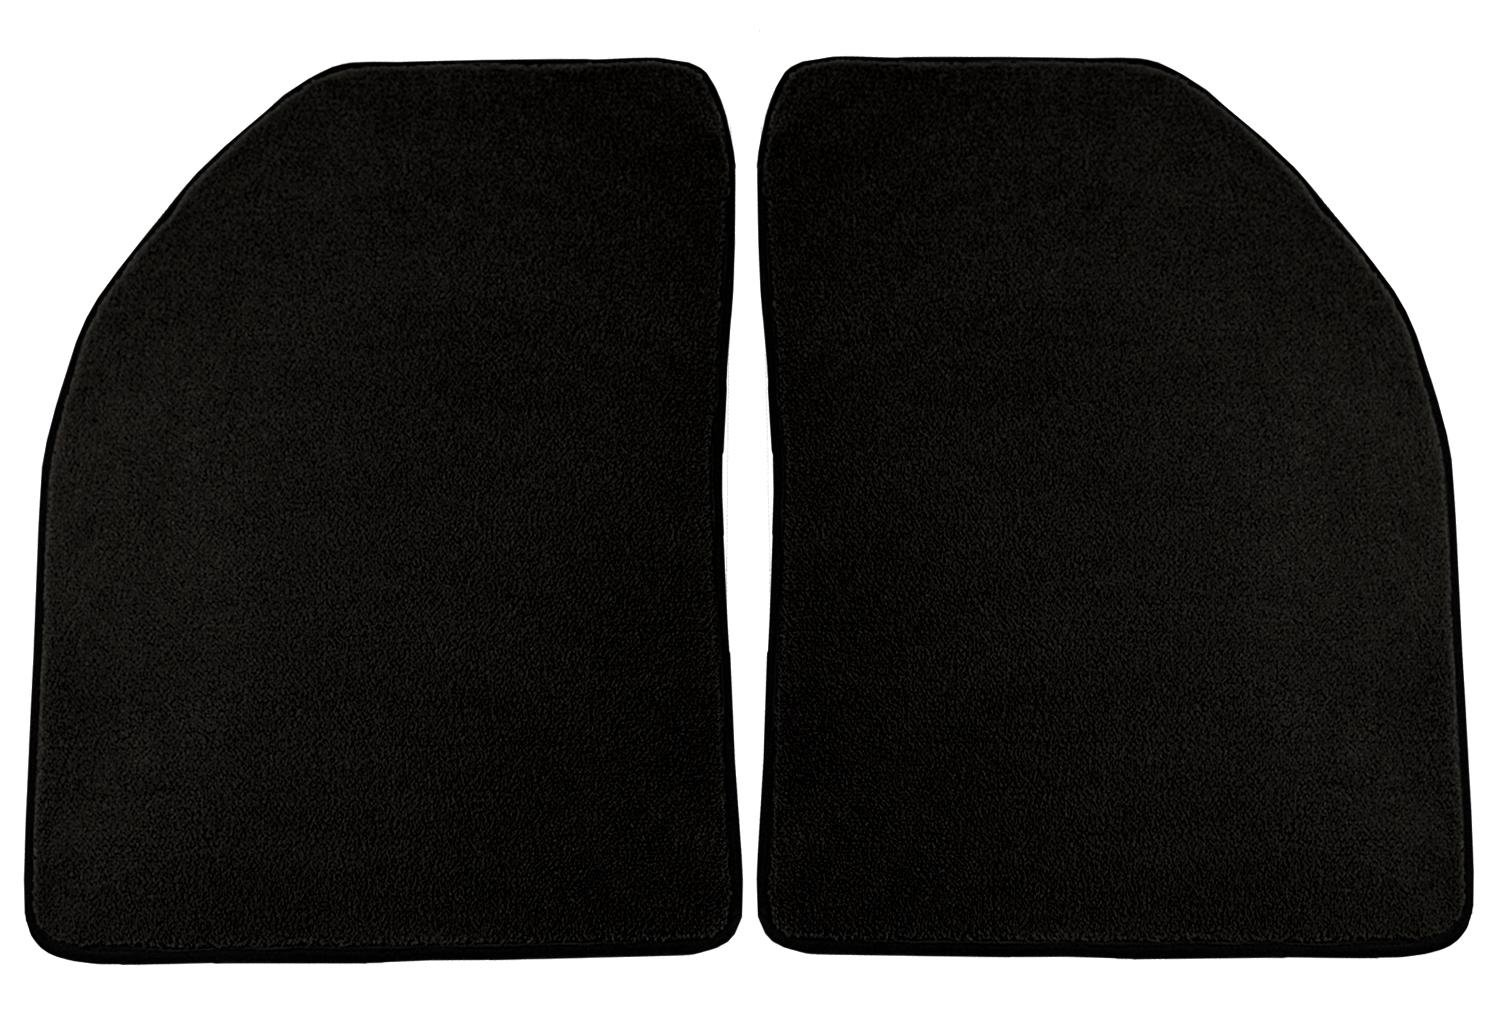 Coverking Custom Fit Front and Rear Floor Mats for Select Acura TL Models CFMBX1AC9217 Black Nylon Carpet